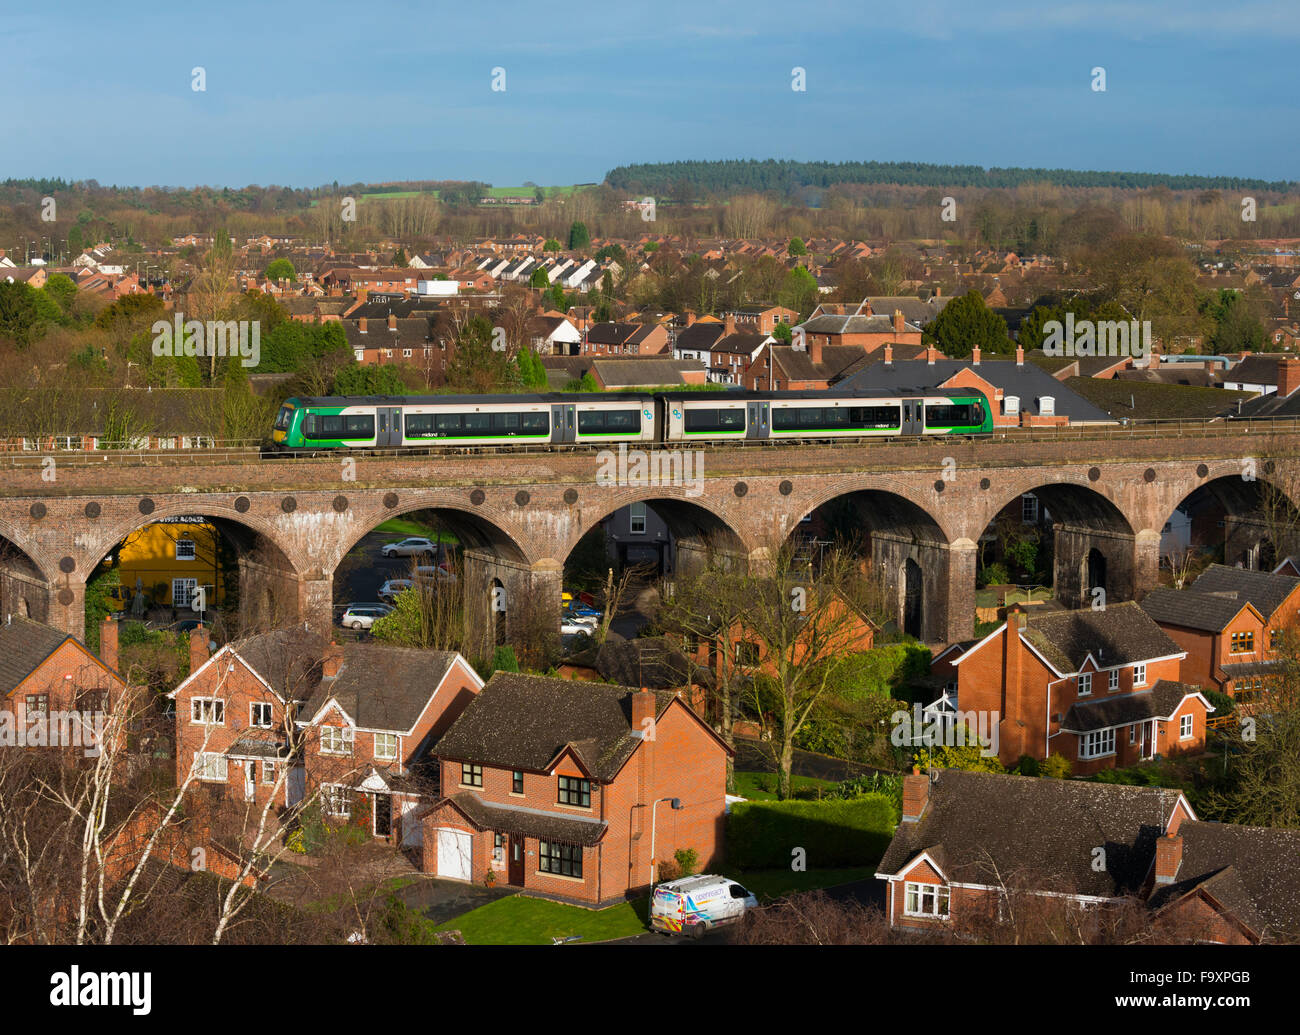 A London Midland train on the viaduct passing through Shifnal, Shropshire, England. - Stock Image